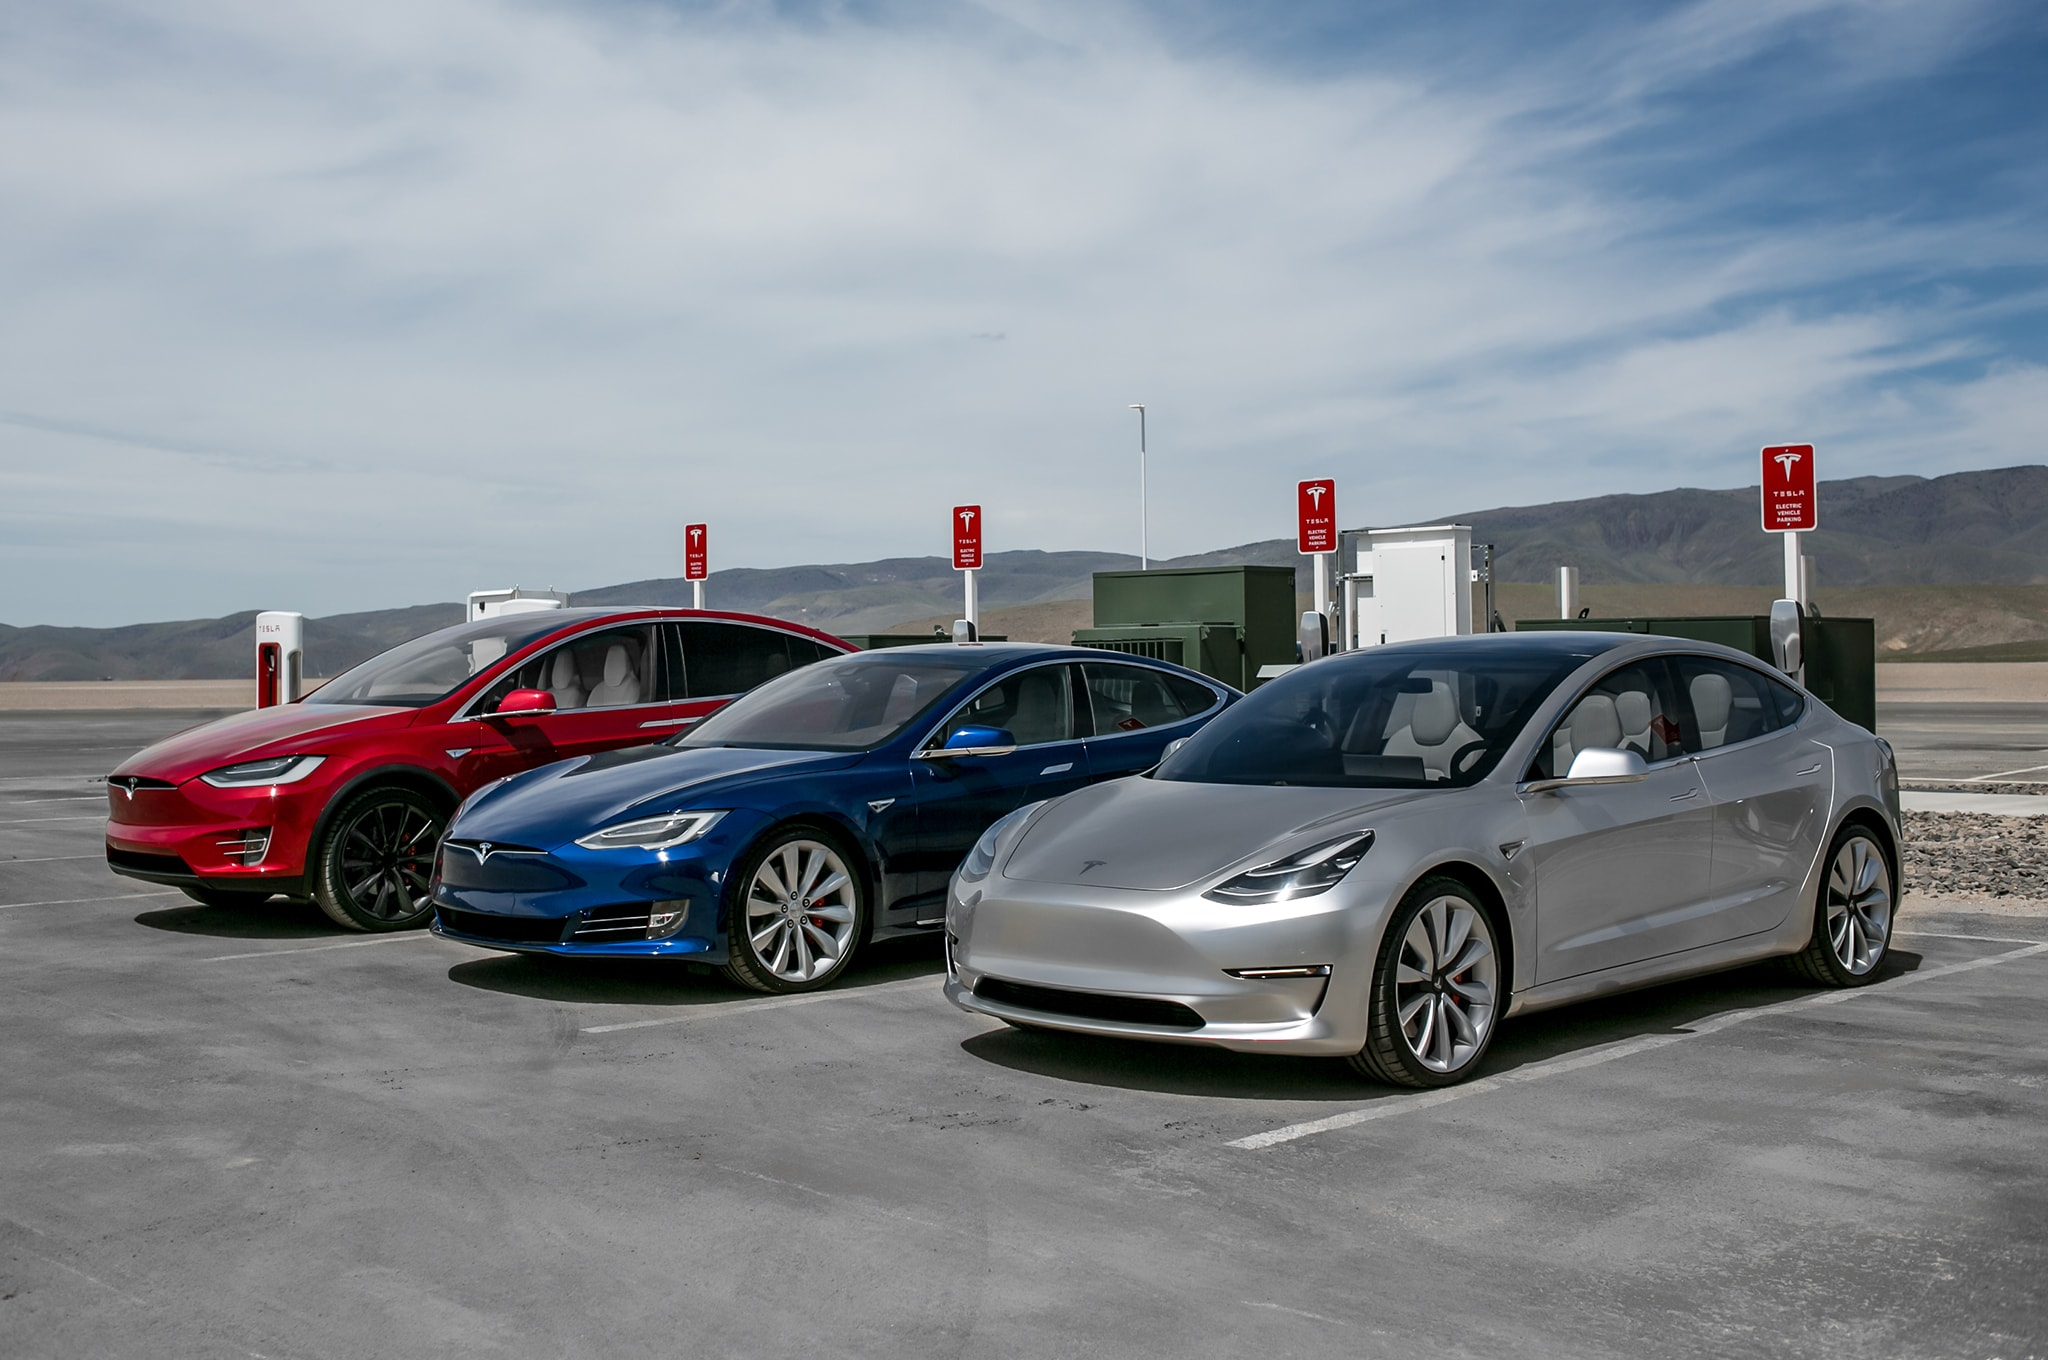 tesla's used car business is rapidly expanding, on pace to triple